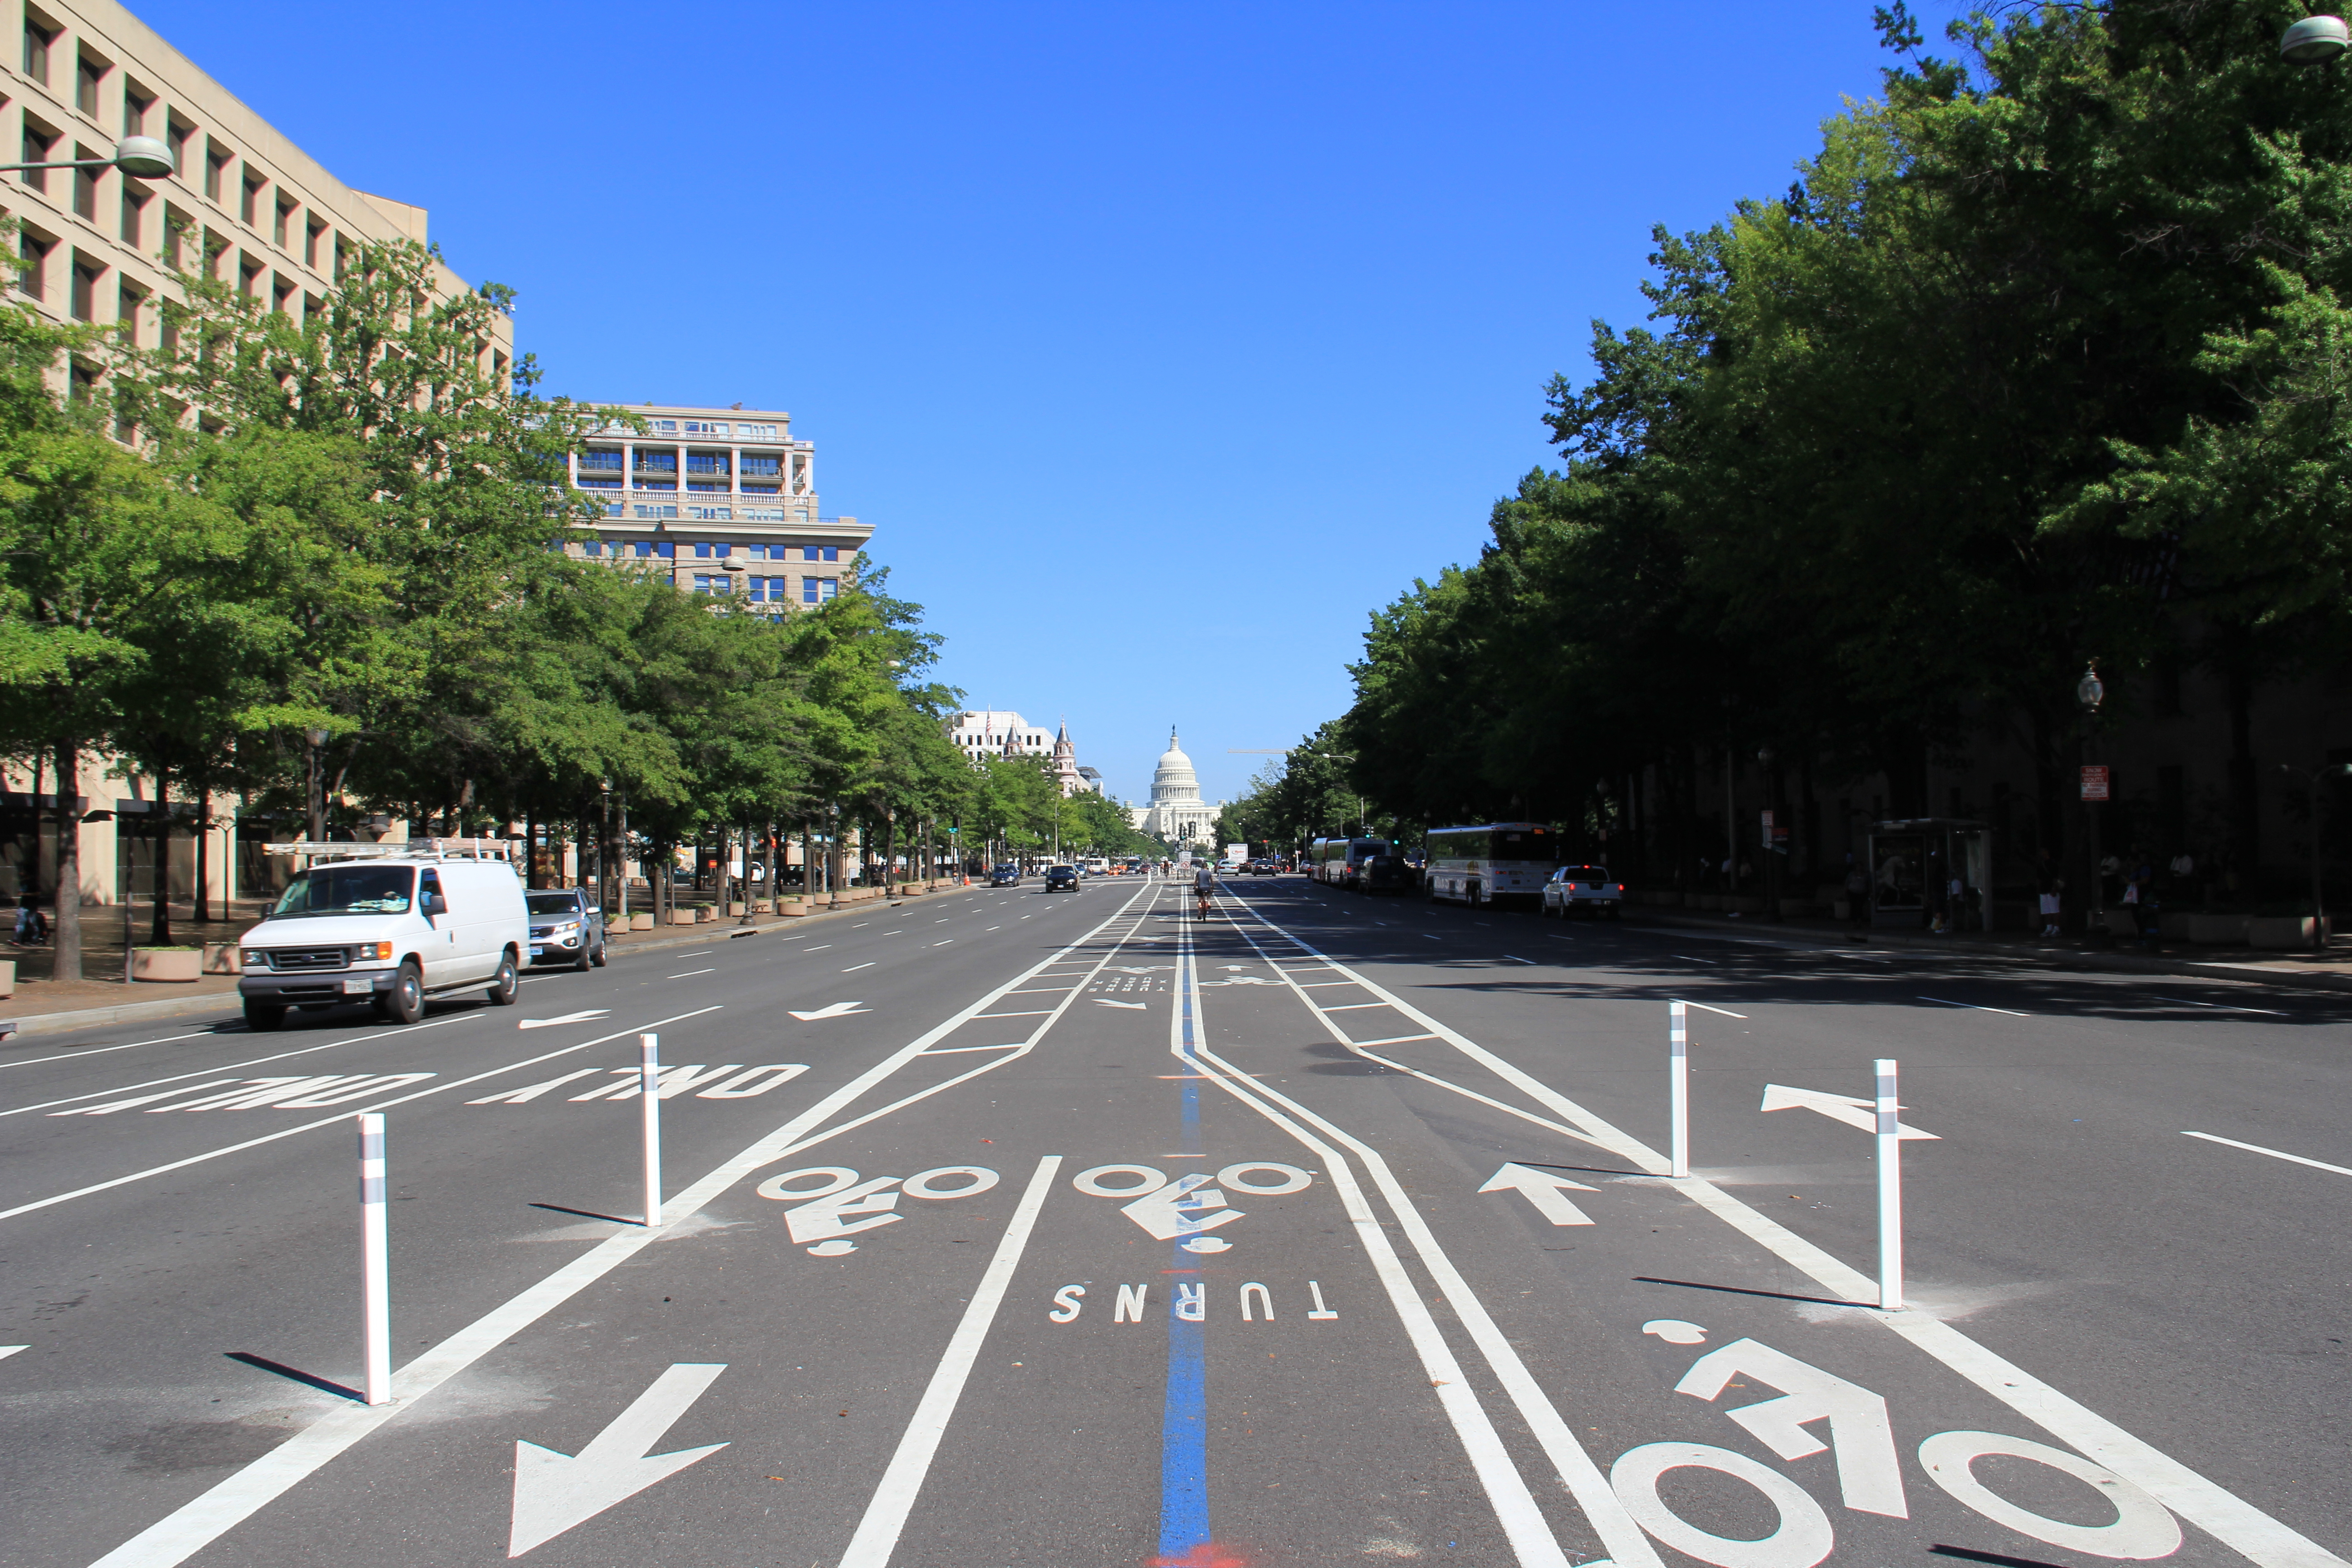 Annual D.C. area Bike to Work Day planned for May 17